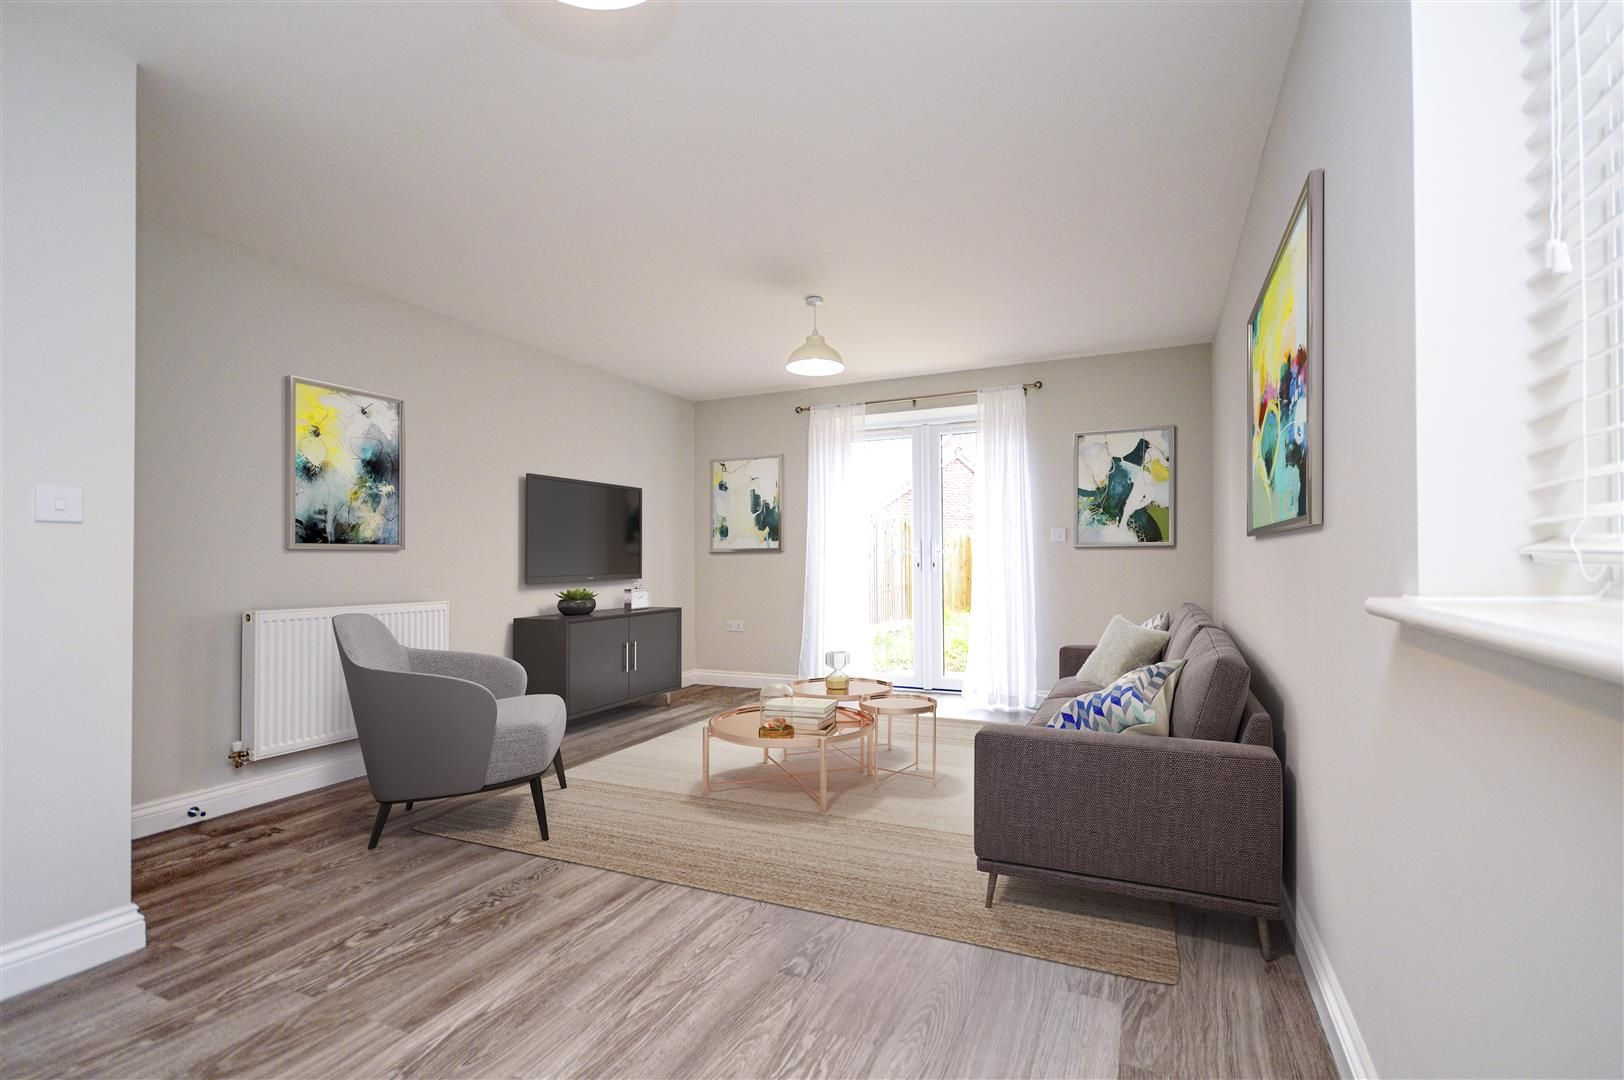 2 bed semi-detached for sale in Kingstone 4